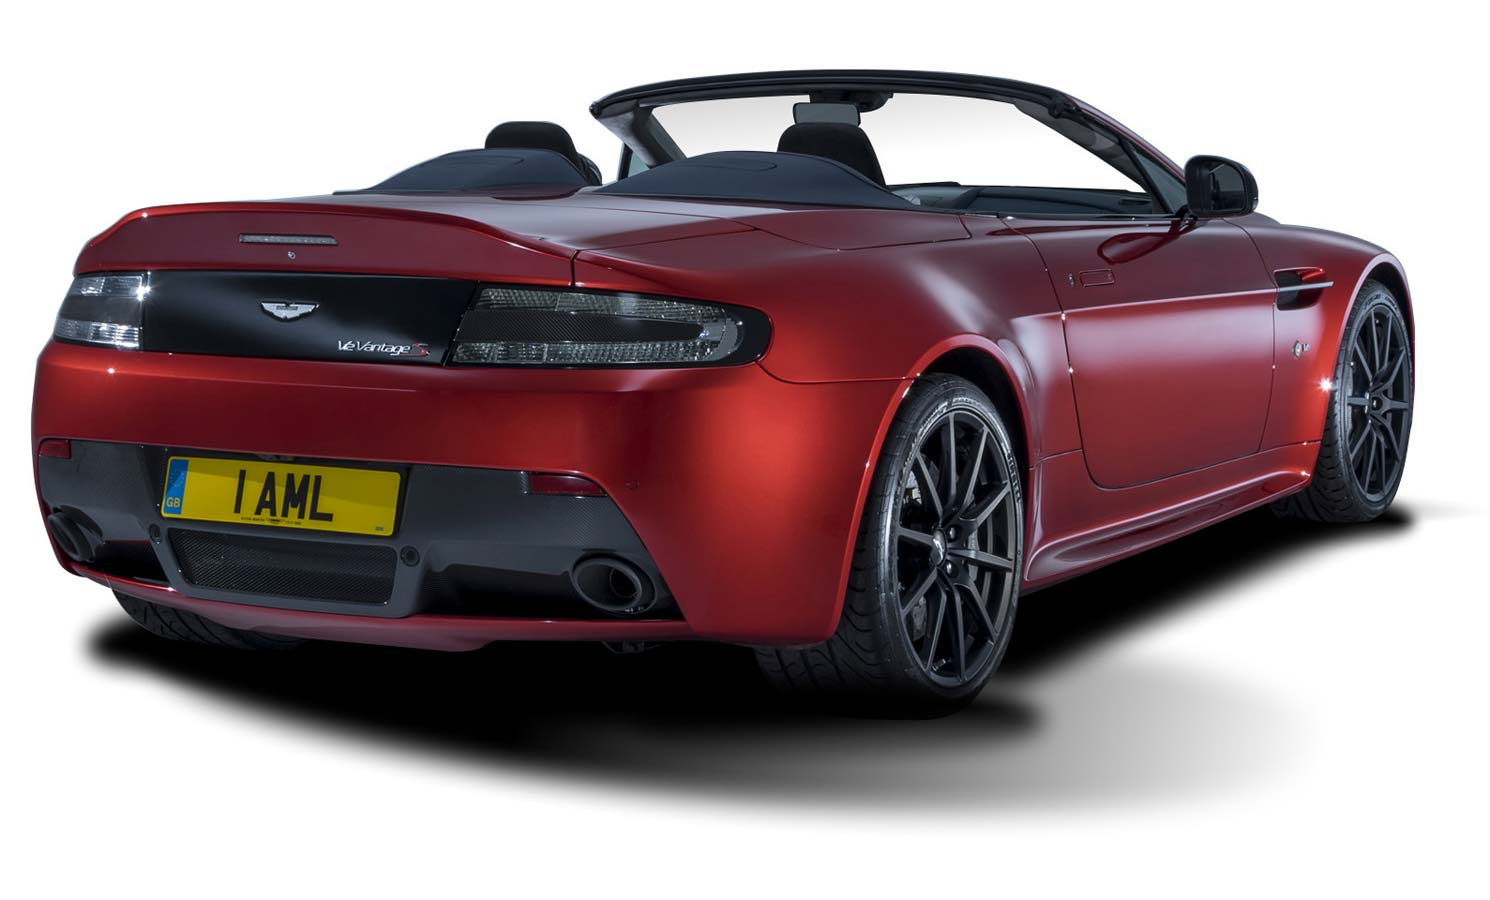 565hp 2014 aston martin v12 vantage s roadster full debut in 80 photos video engine. Black Bedroom Furniture Sets. Home Design Ideas